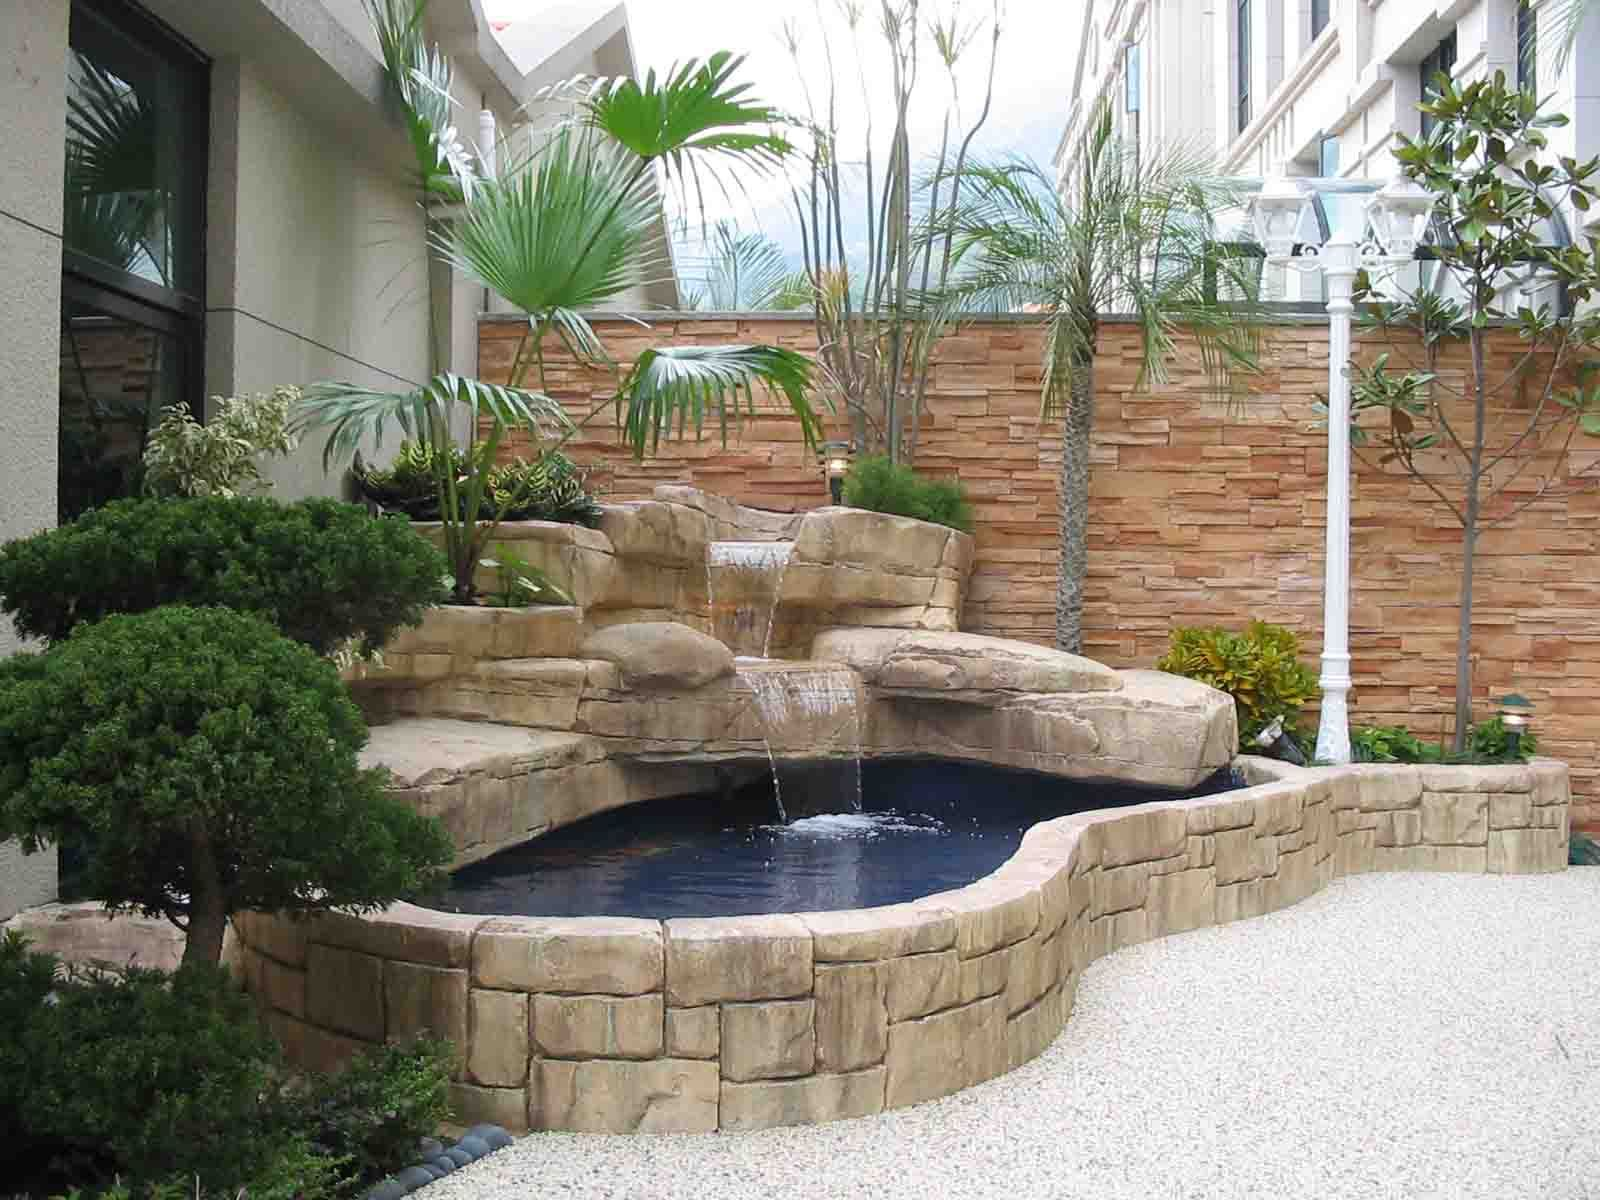 Similiar Raised Fish Ponds Designs Keywords Koi Fish Pond Pinterest Raised Pond Pond